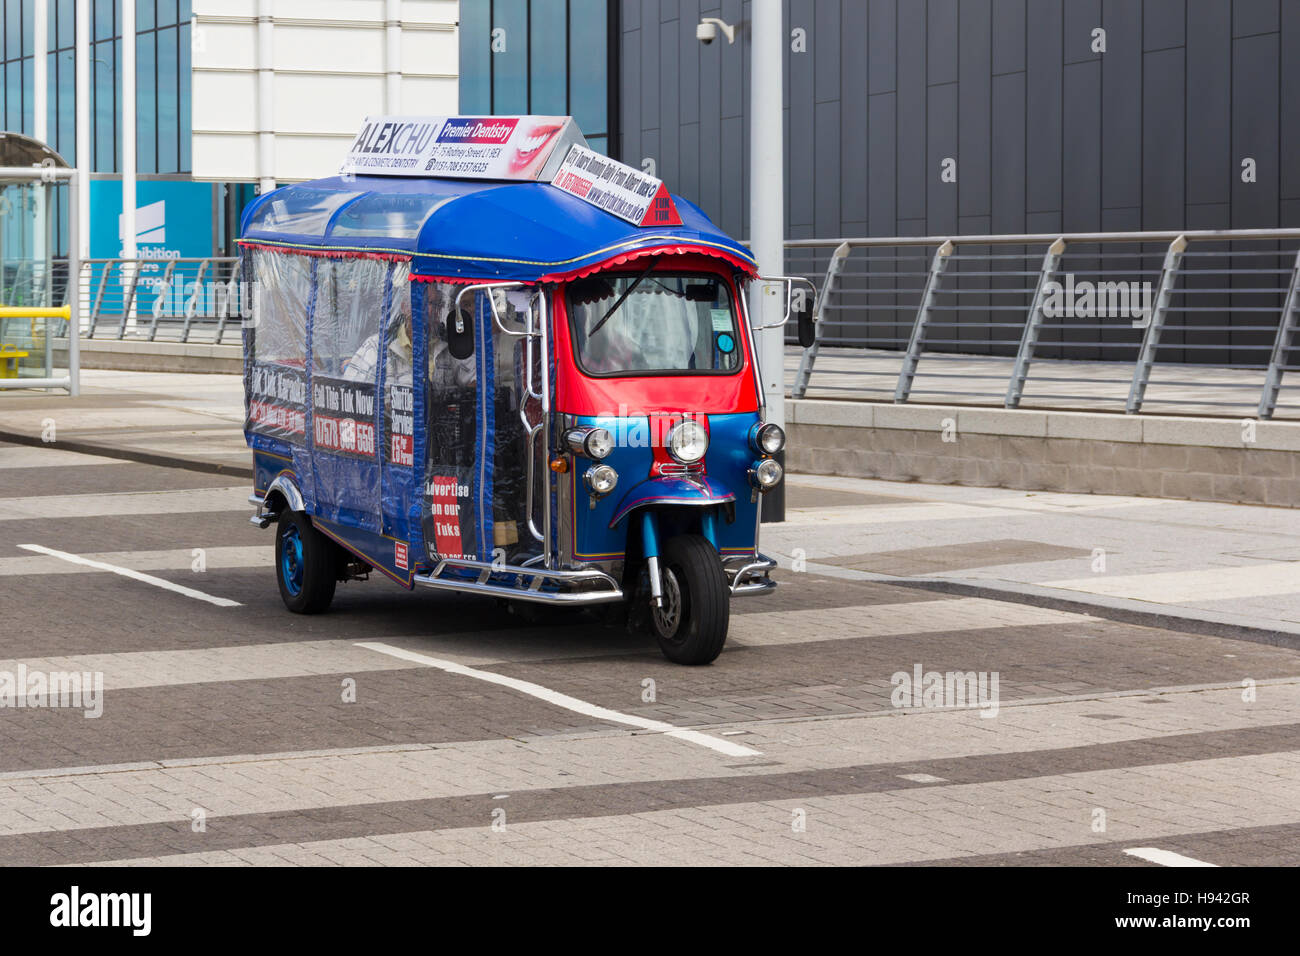 Tuk Tuk three wheel auto rickshaw tourist taxi service travelling along King's Parade on Liverpool's waterfront. - Stock Image